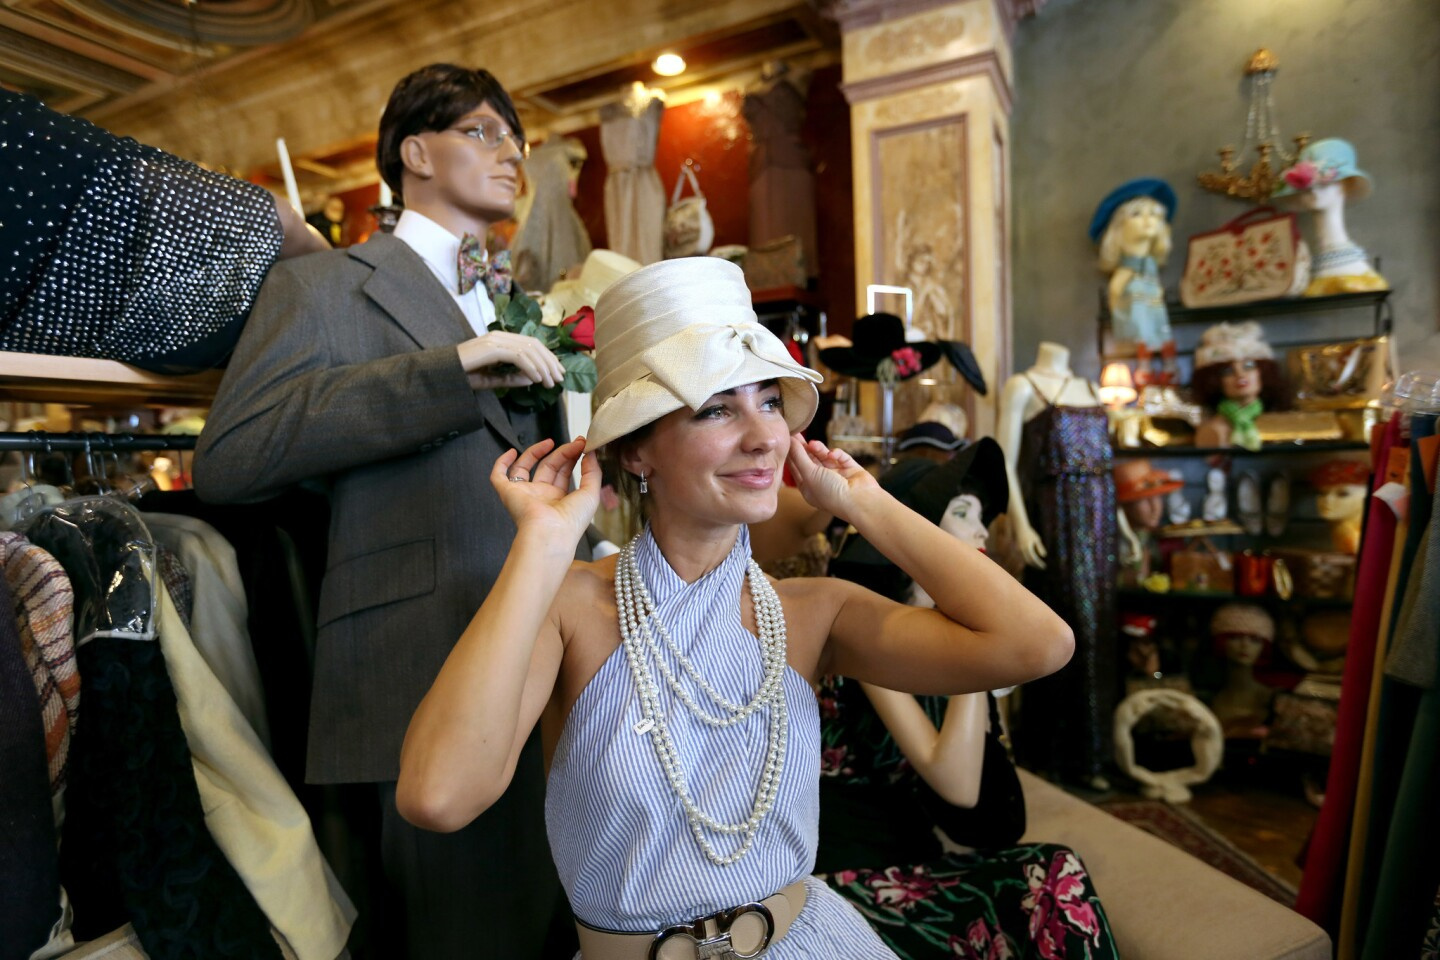 Alex Wilson, 35 of Los Angeles, tries on a vintage hat at Playclothes Vintage, in Burbank.